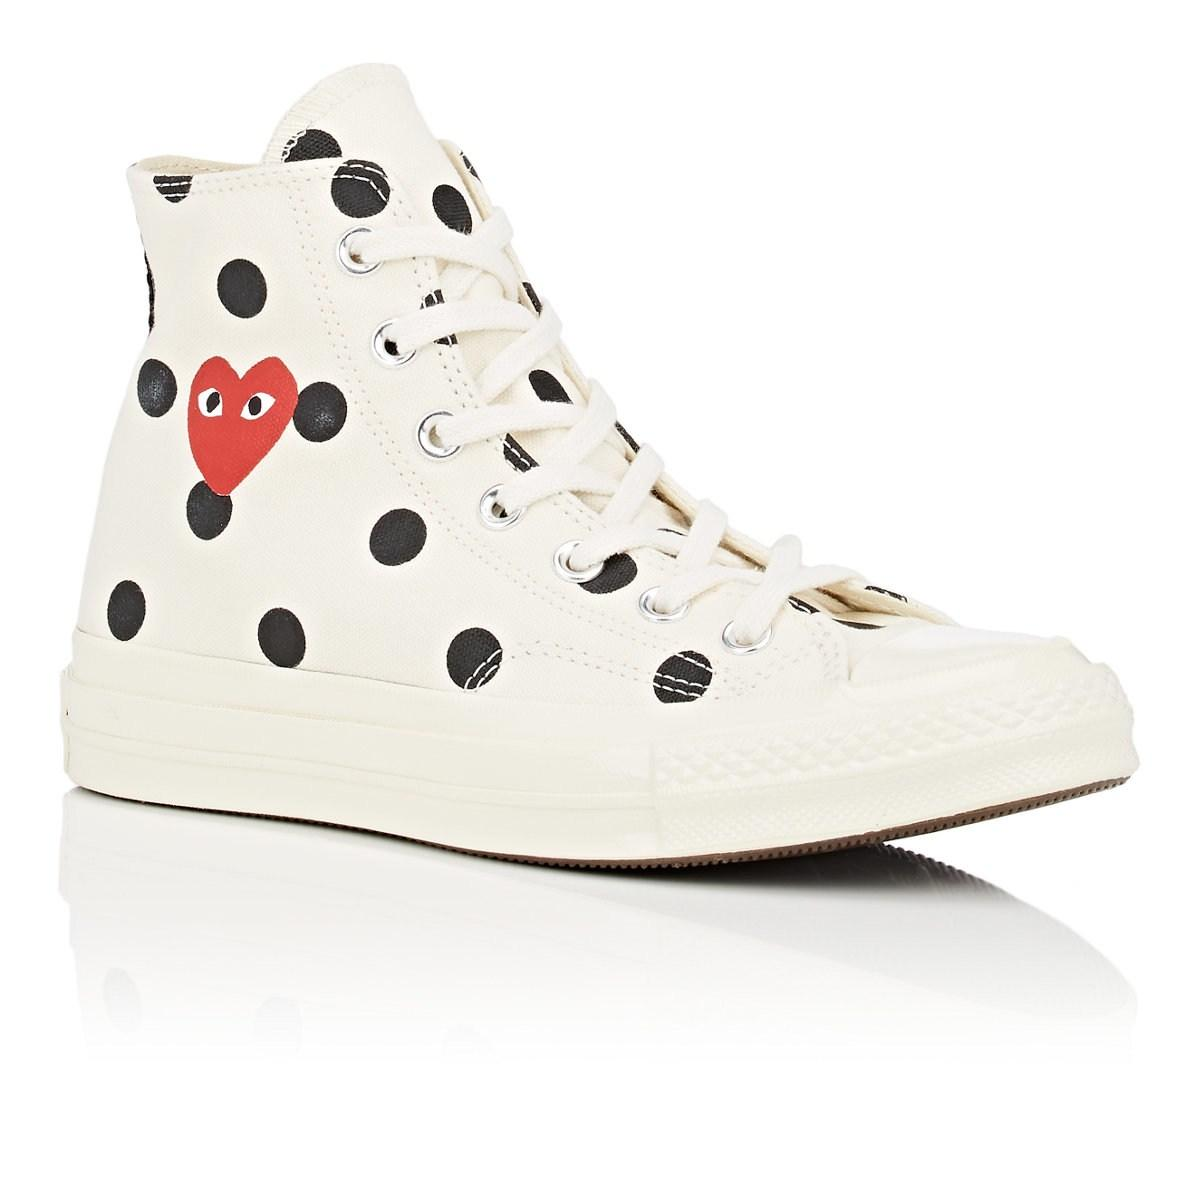 f2e45db192e5ad COMME DES GARÇONS PLAY - White Chuck Taylor  70s Canvas Sneakers - Lyst.  View fullscreen